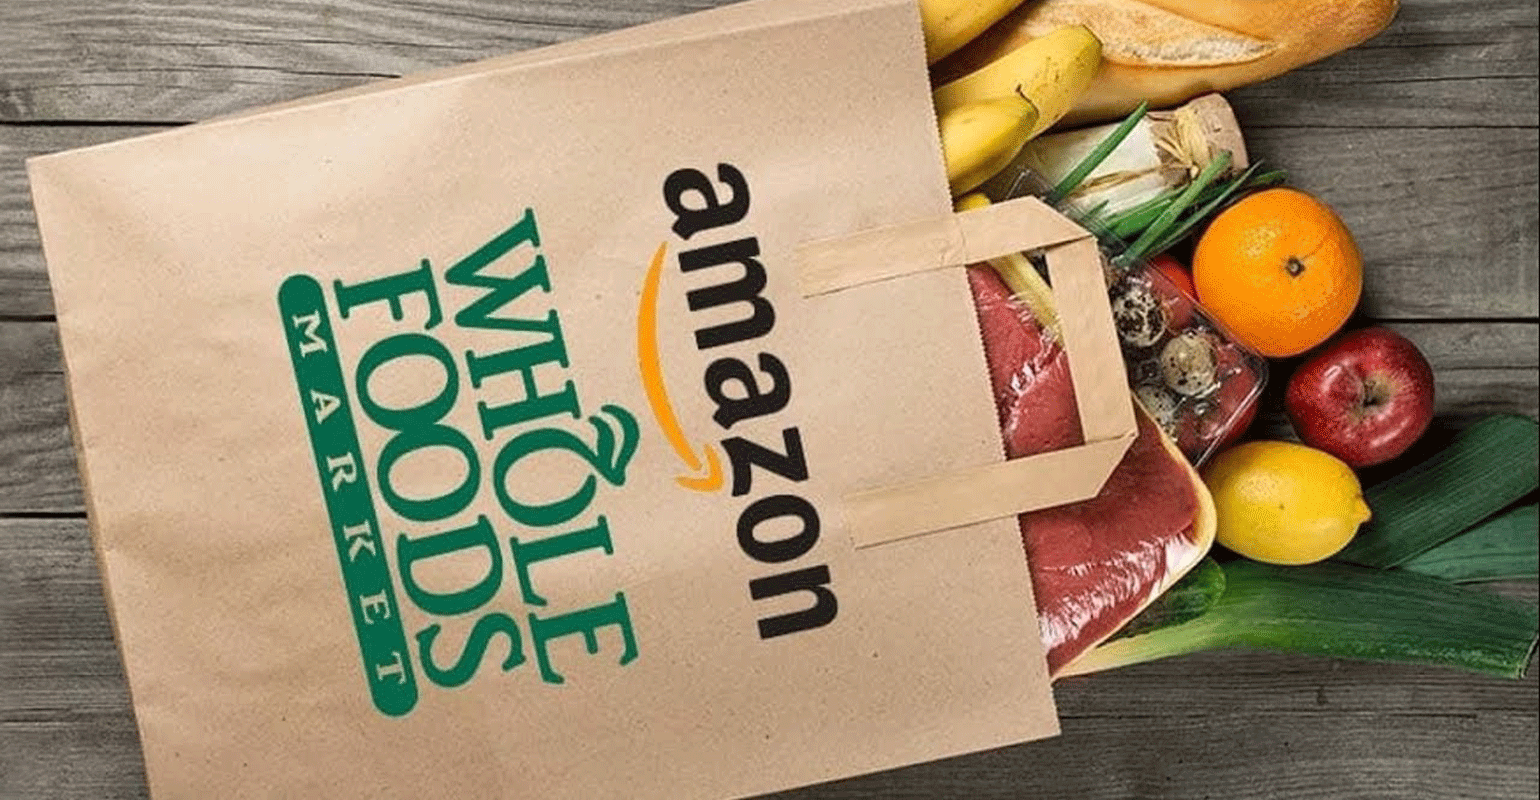 Amazon Prime Day stirred up grocery shoppers | Supermarket News